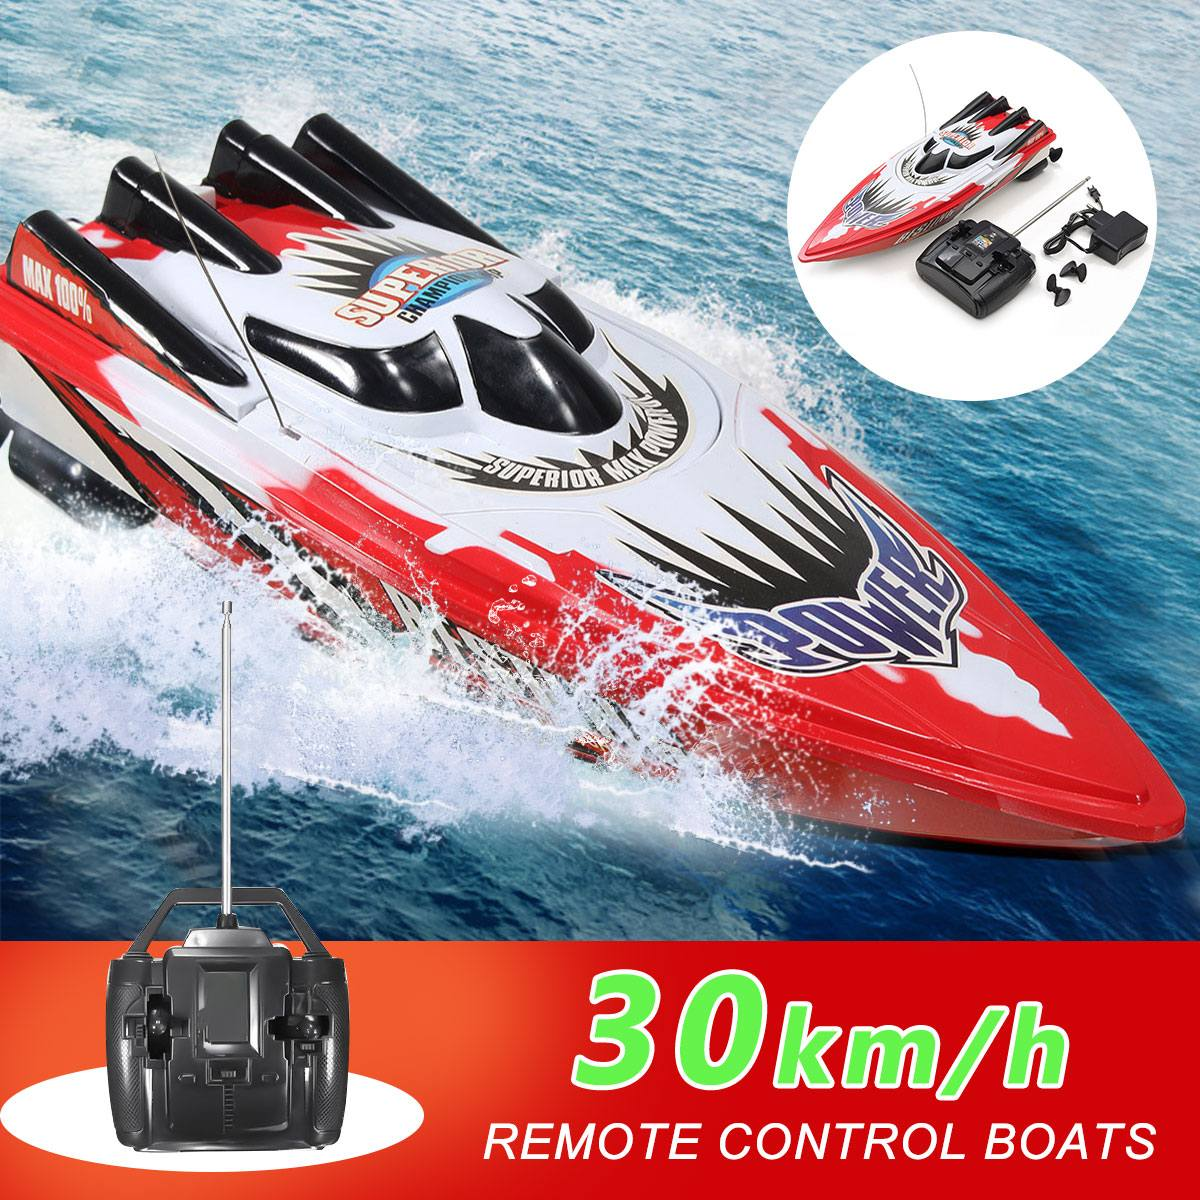 RC Boat 30km/h High Speed Racing Rechargeable Batteries Remote Control Boat For Children Toys Kids Christmas Gifts 33x11x9cm